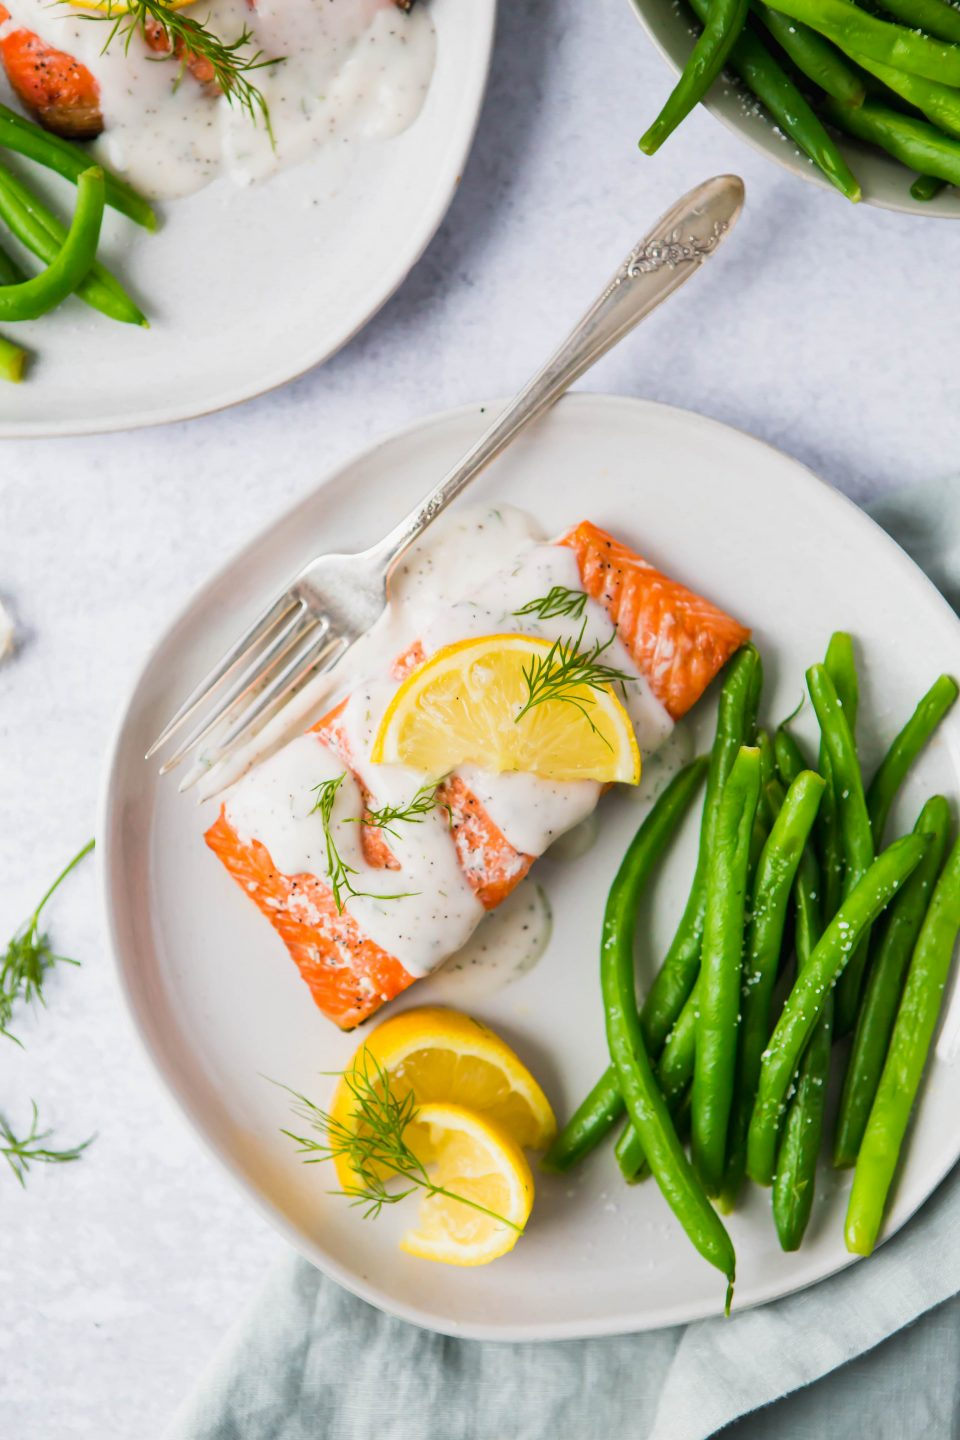 An overhead shot of a piece of salmon drizzled with a cream sauce. Lemon slices and green beans are also on the plate.